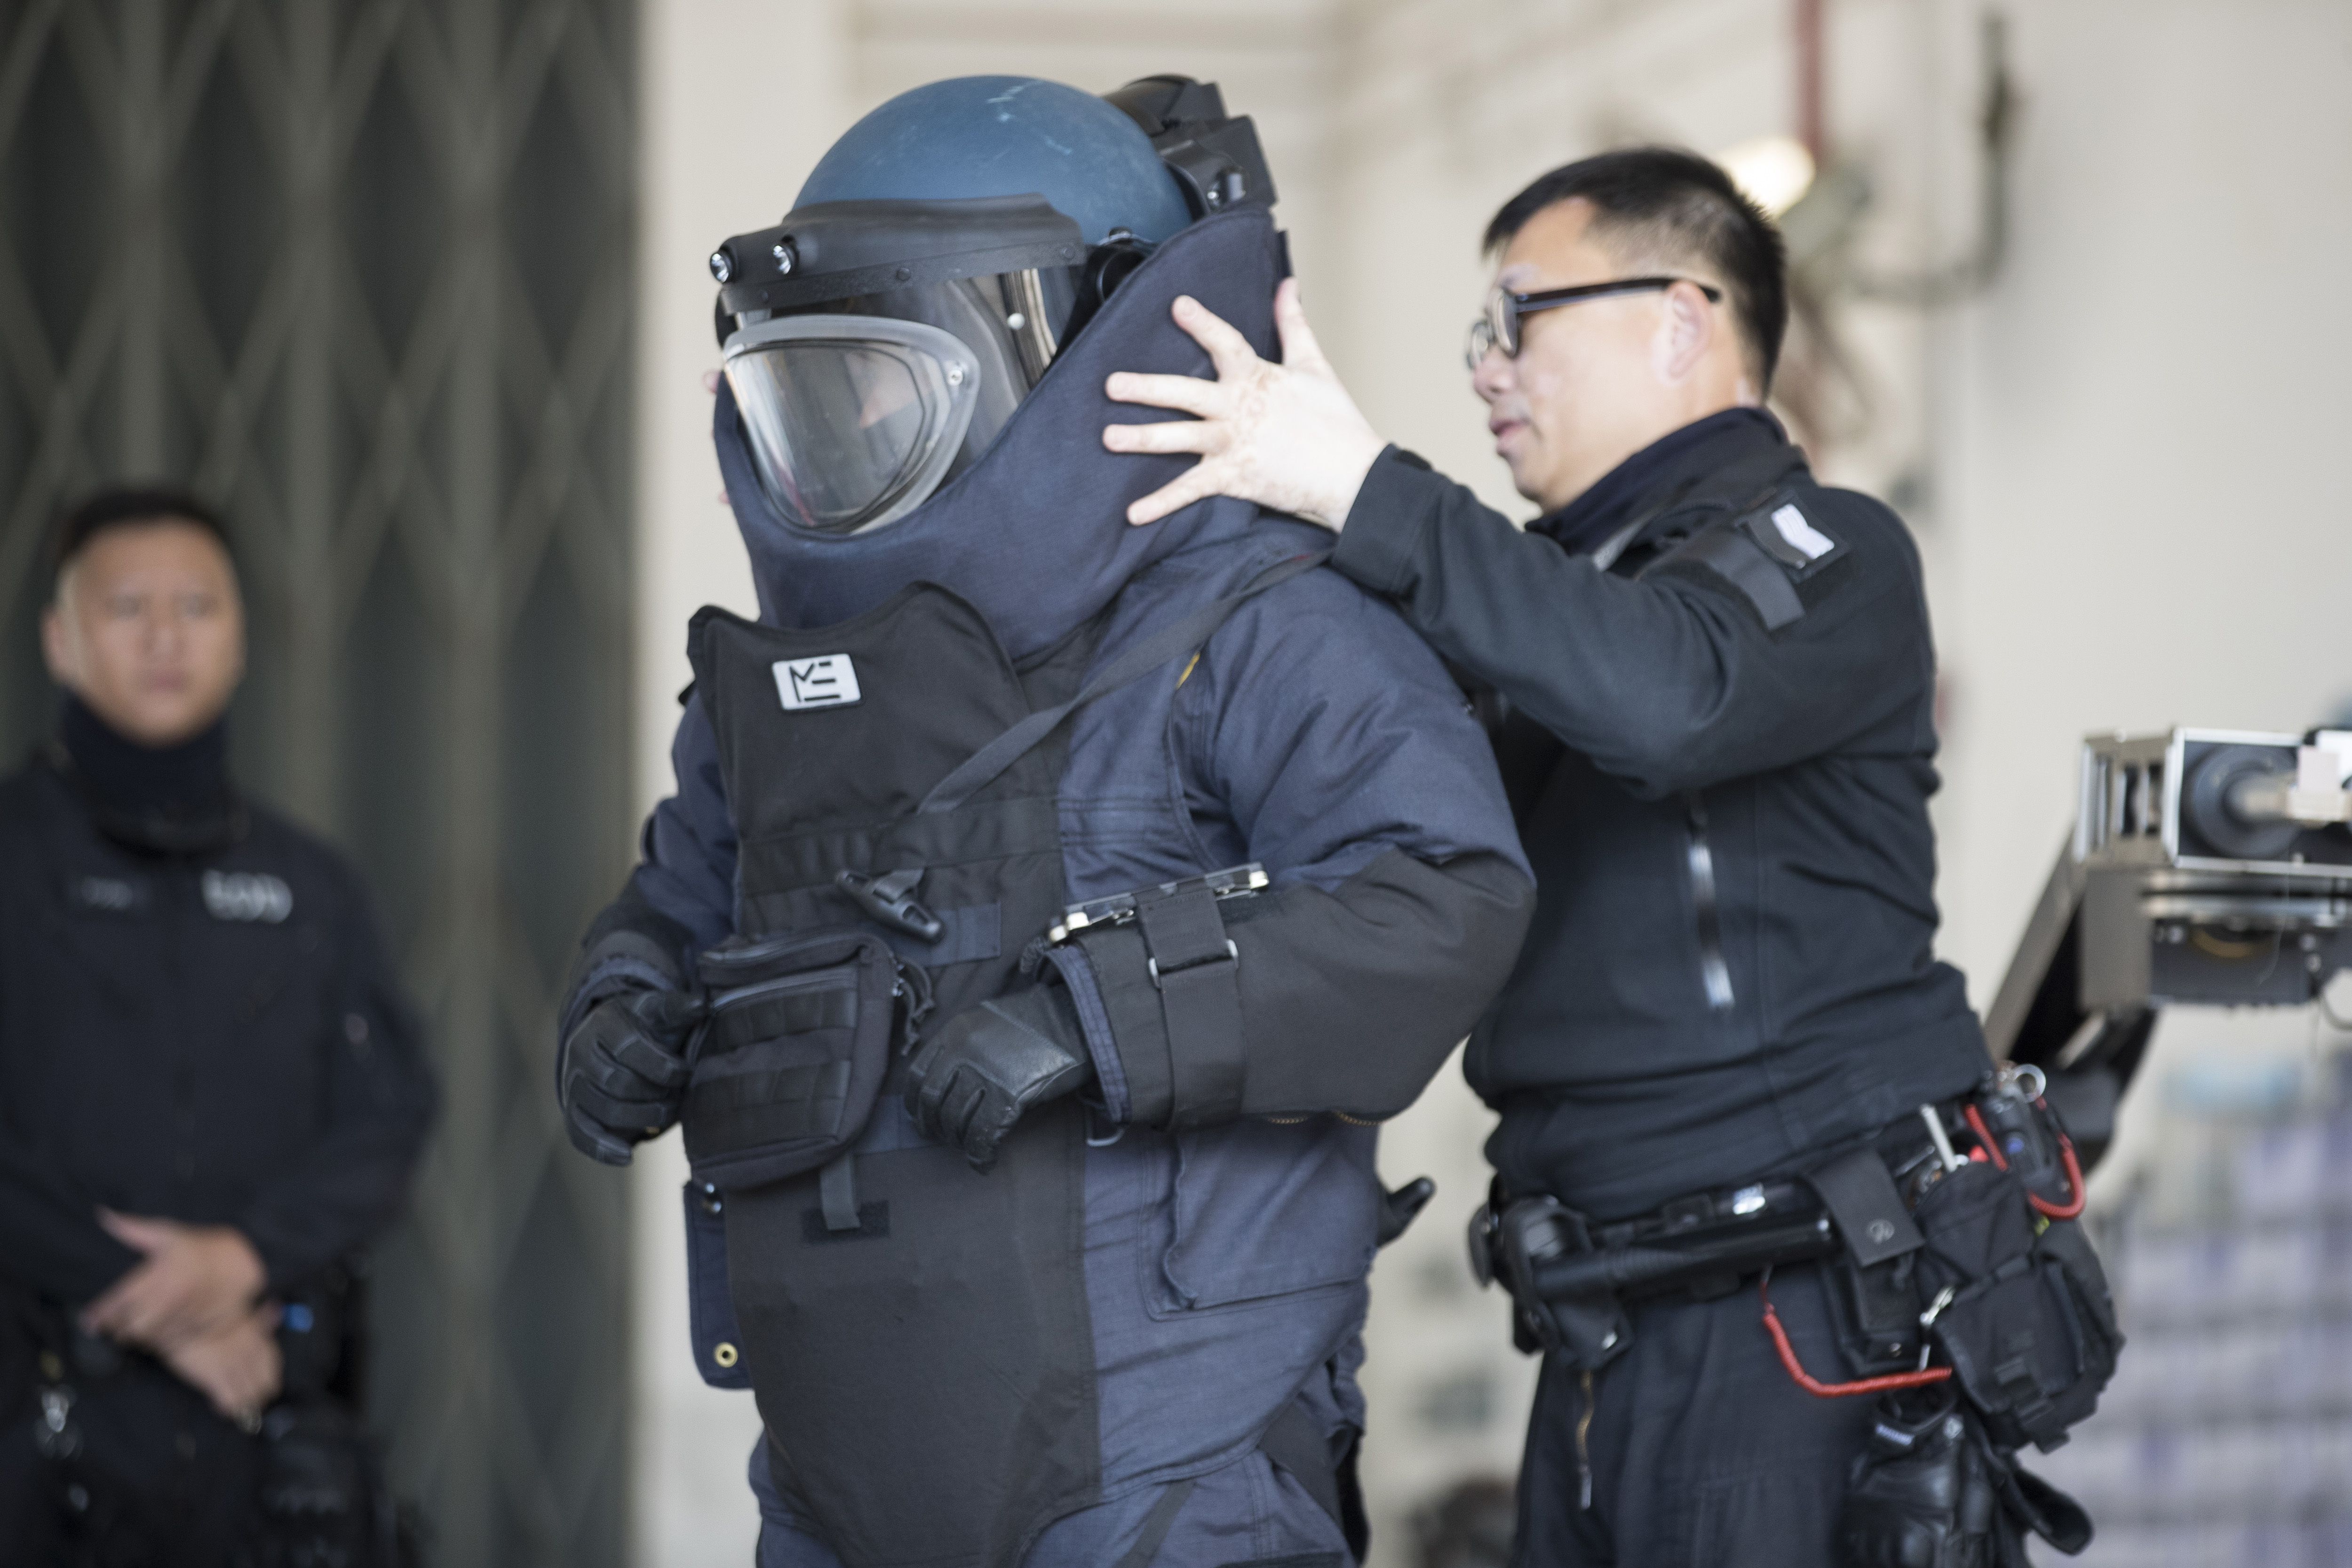 A police officer from the bomb disposal squad putting on protective gear during a demonstration for media in Hong Kong on Dec. 6, 2019.